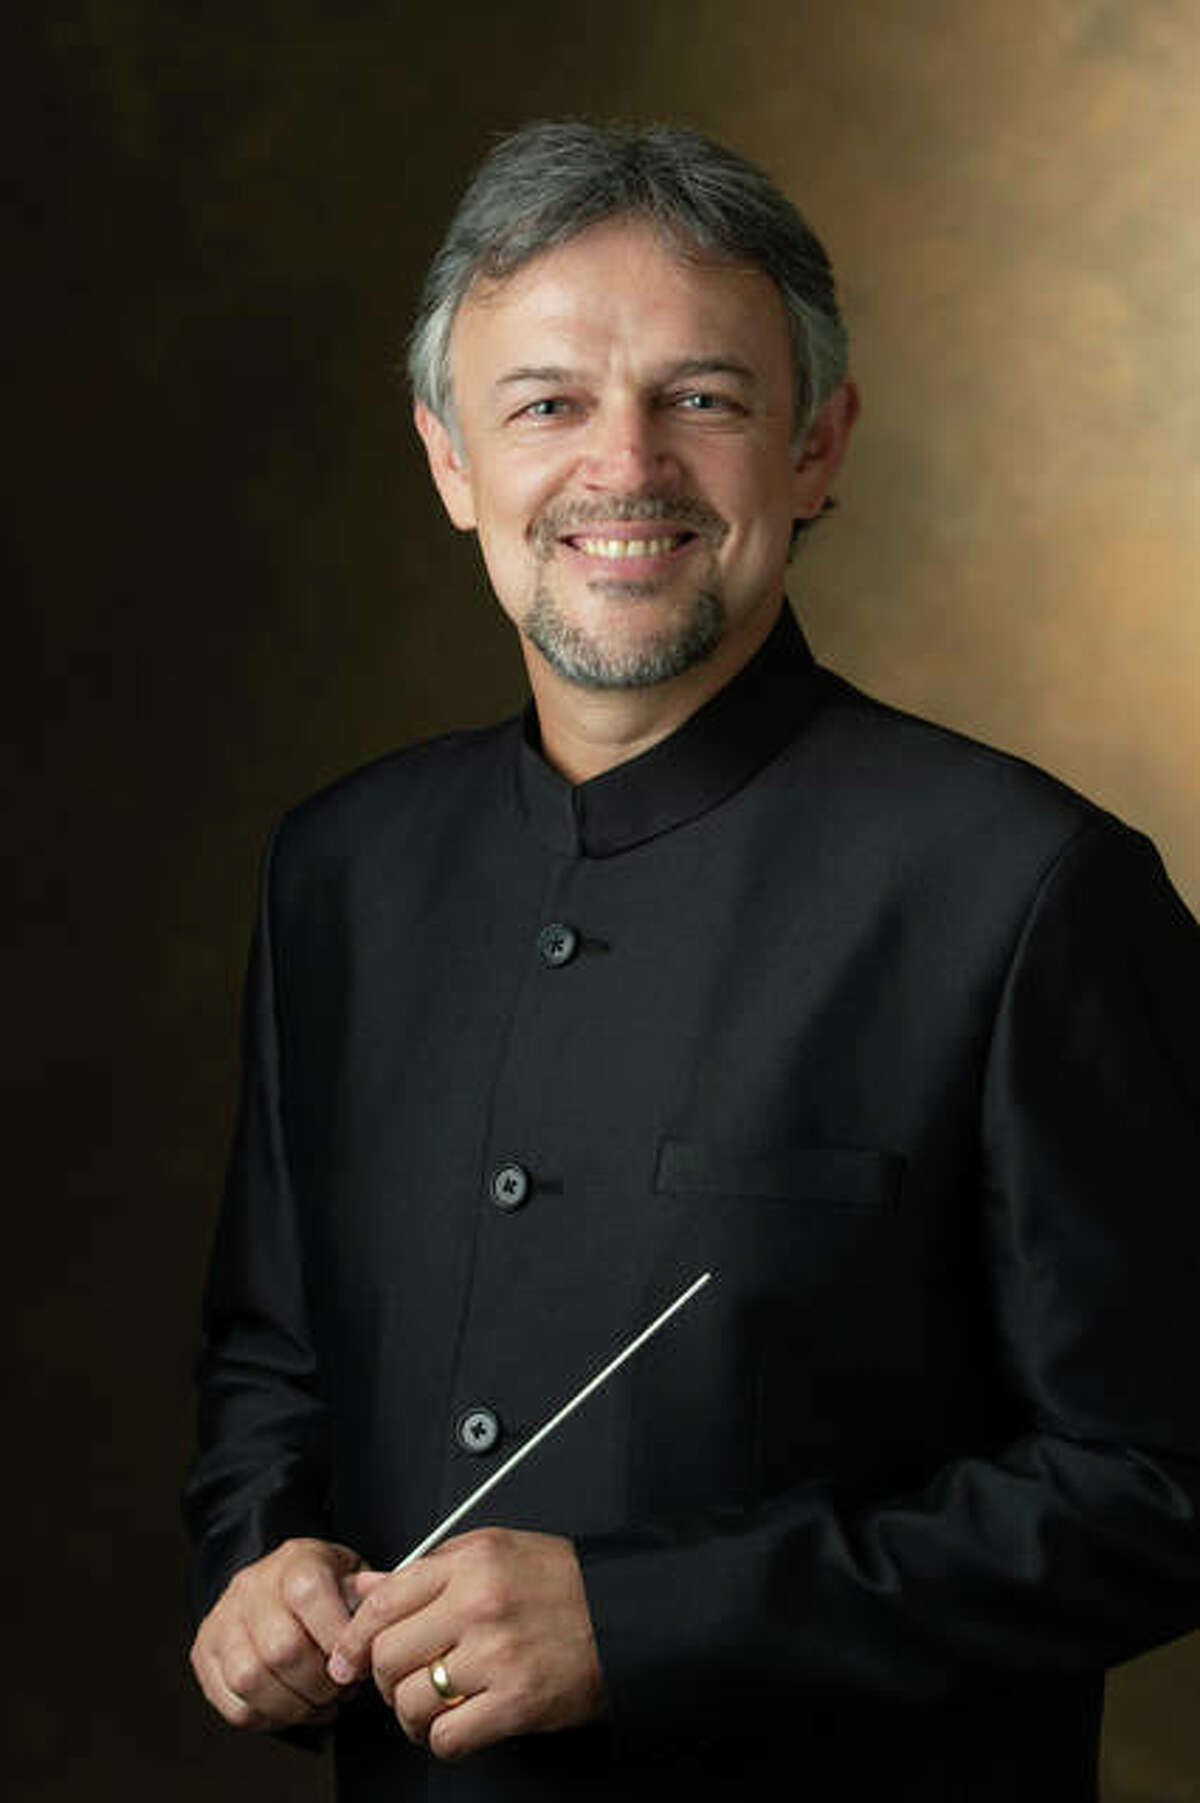 Director of Bands Rubén D. Gómez, PhD, assistant professor in the Department of Music at SIUE.